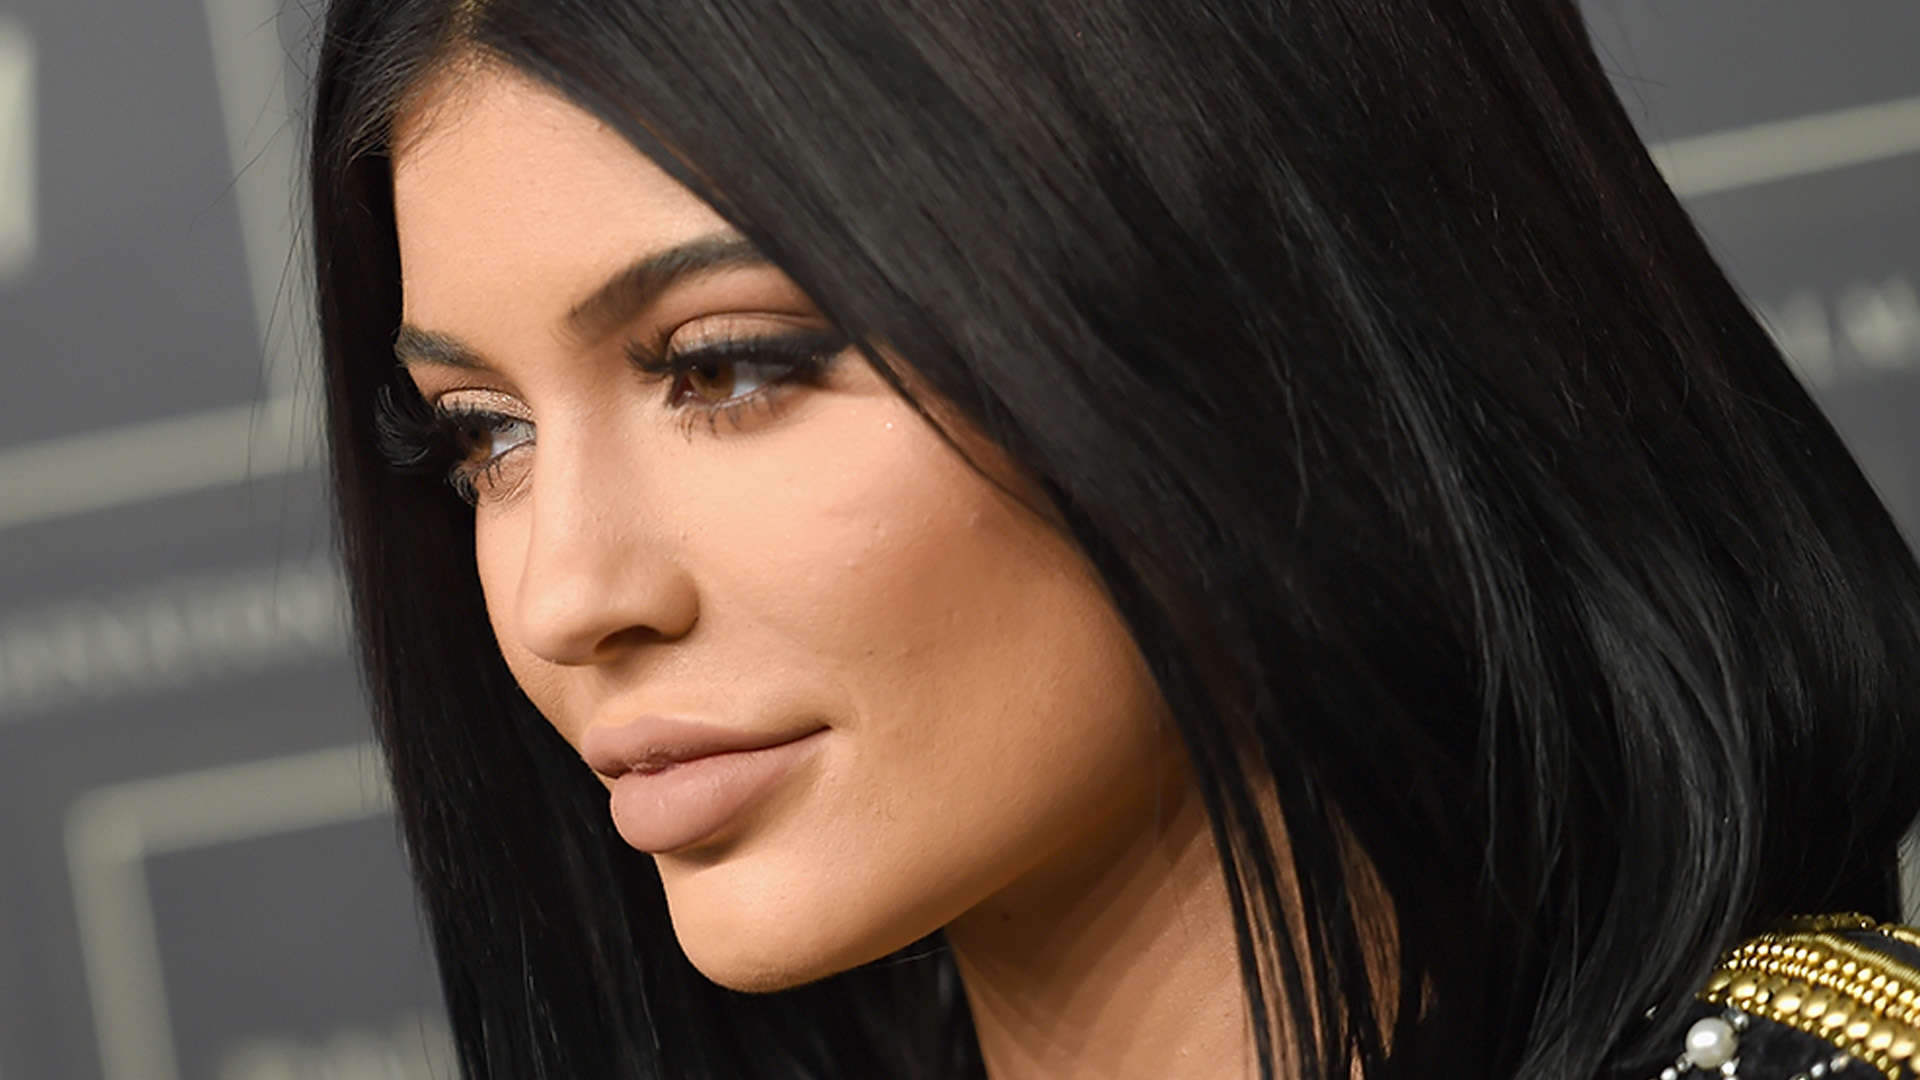 Kylie Jenner Wallpapers High Resolution and Quality Download